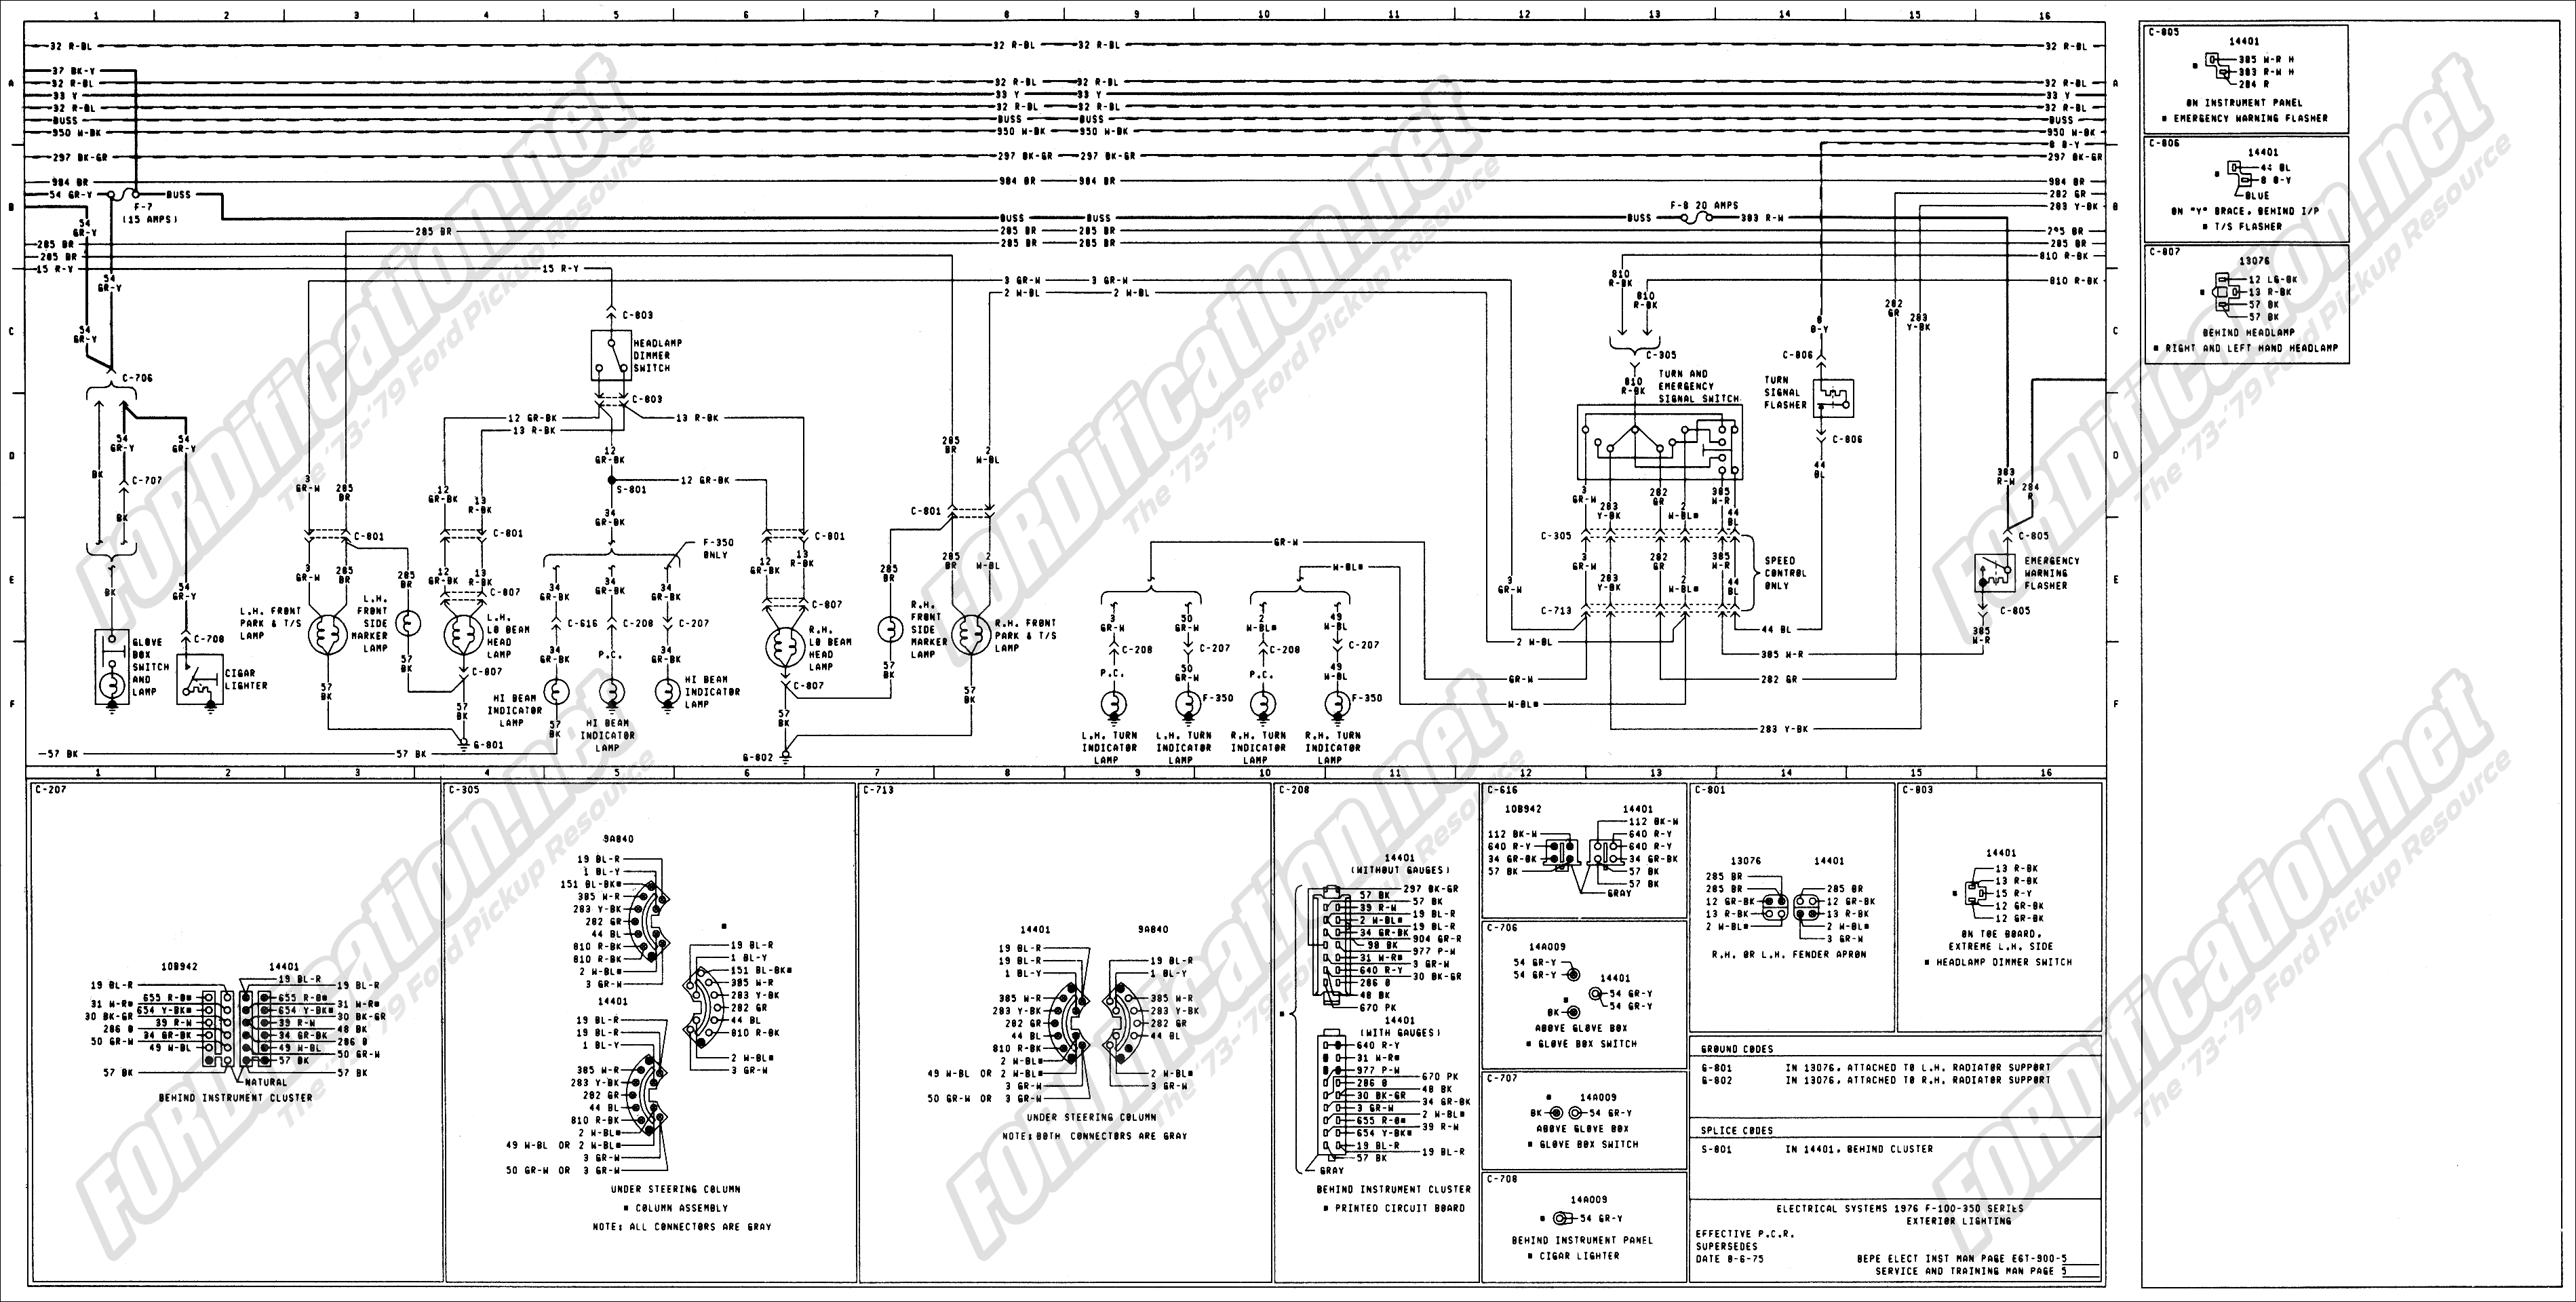 wiring_76master_5of9 1973 1979 ford truck wiring diagrams & schematics fordification net 1996 ford f250 tail light wiring diagram at readyjetset.co